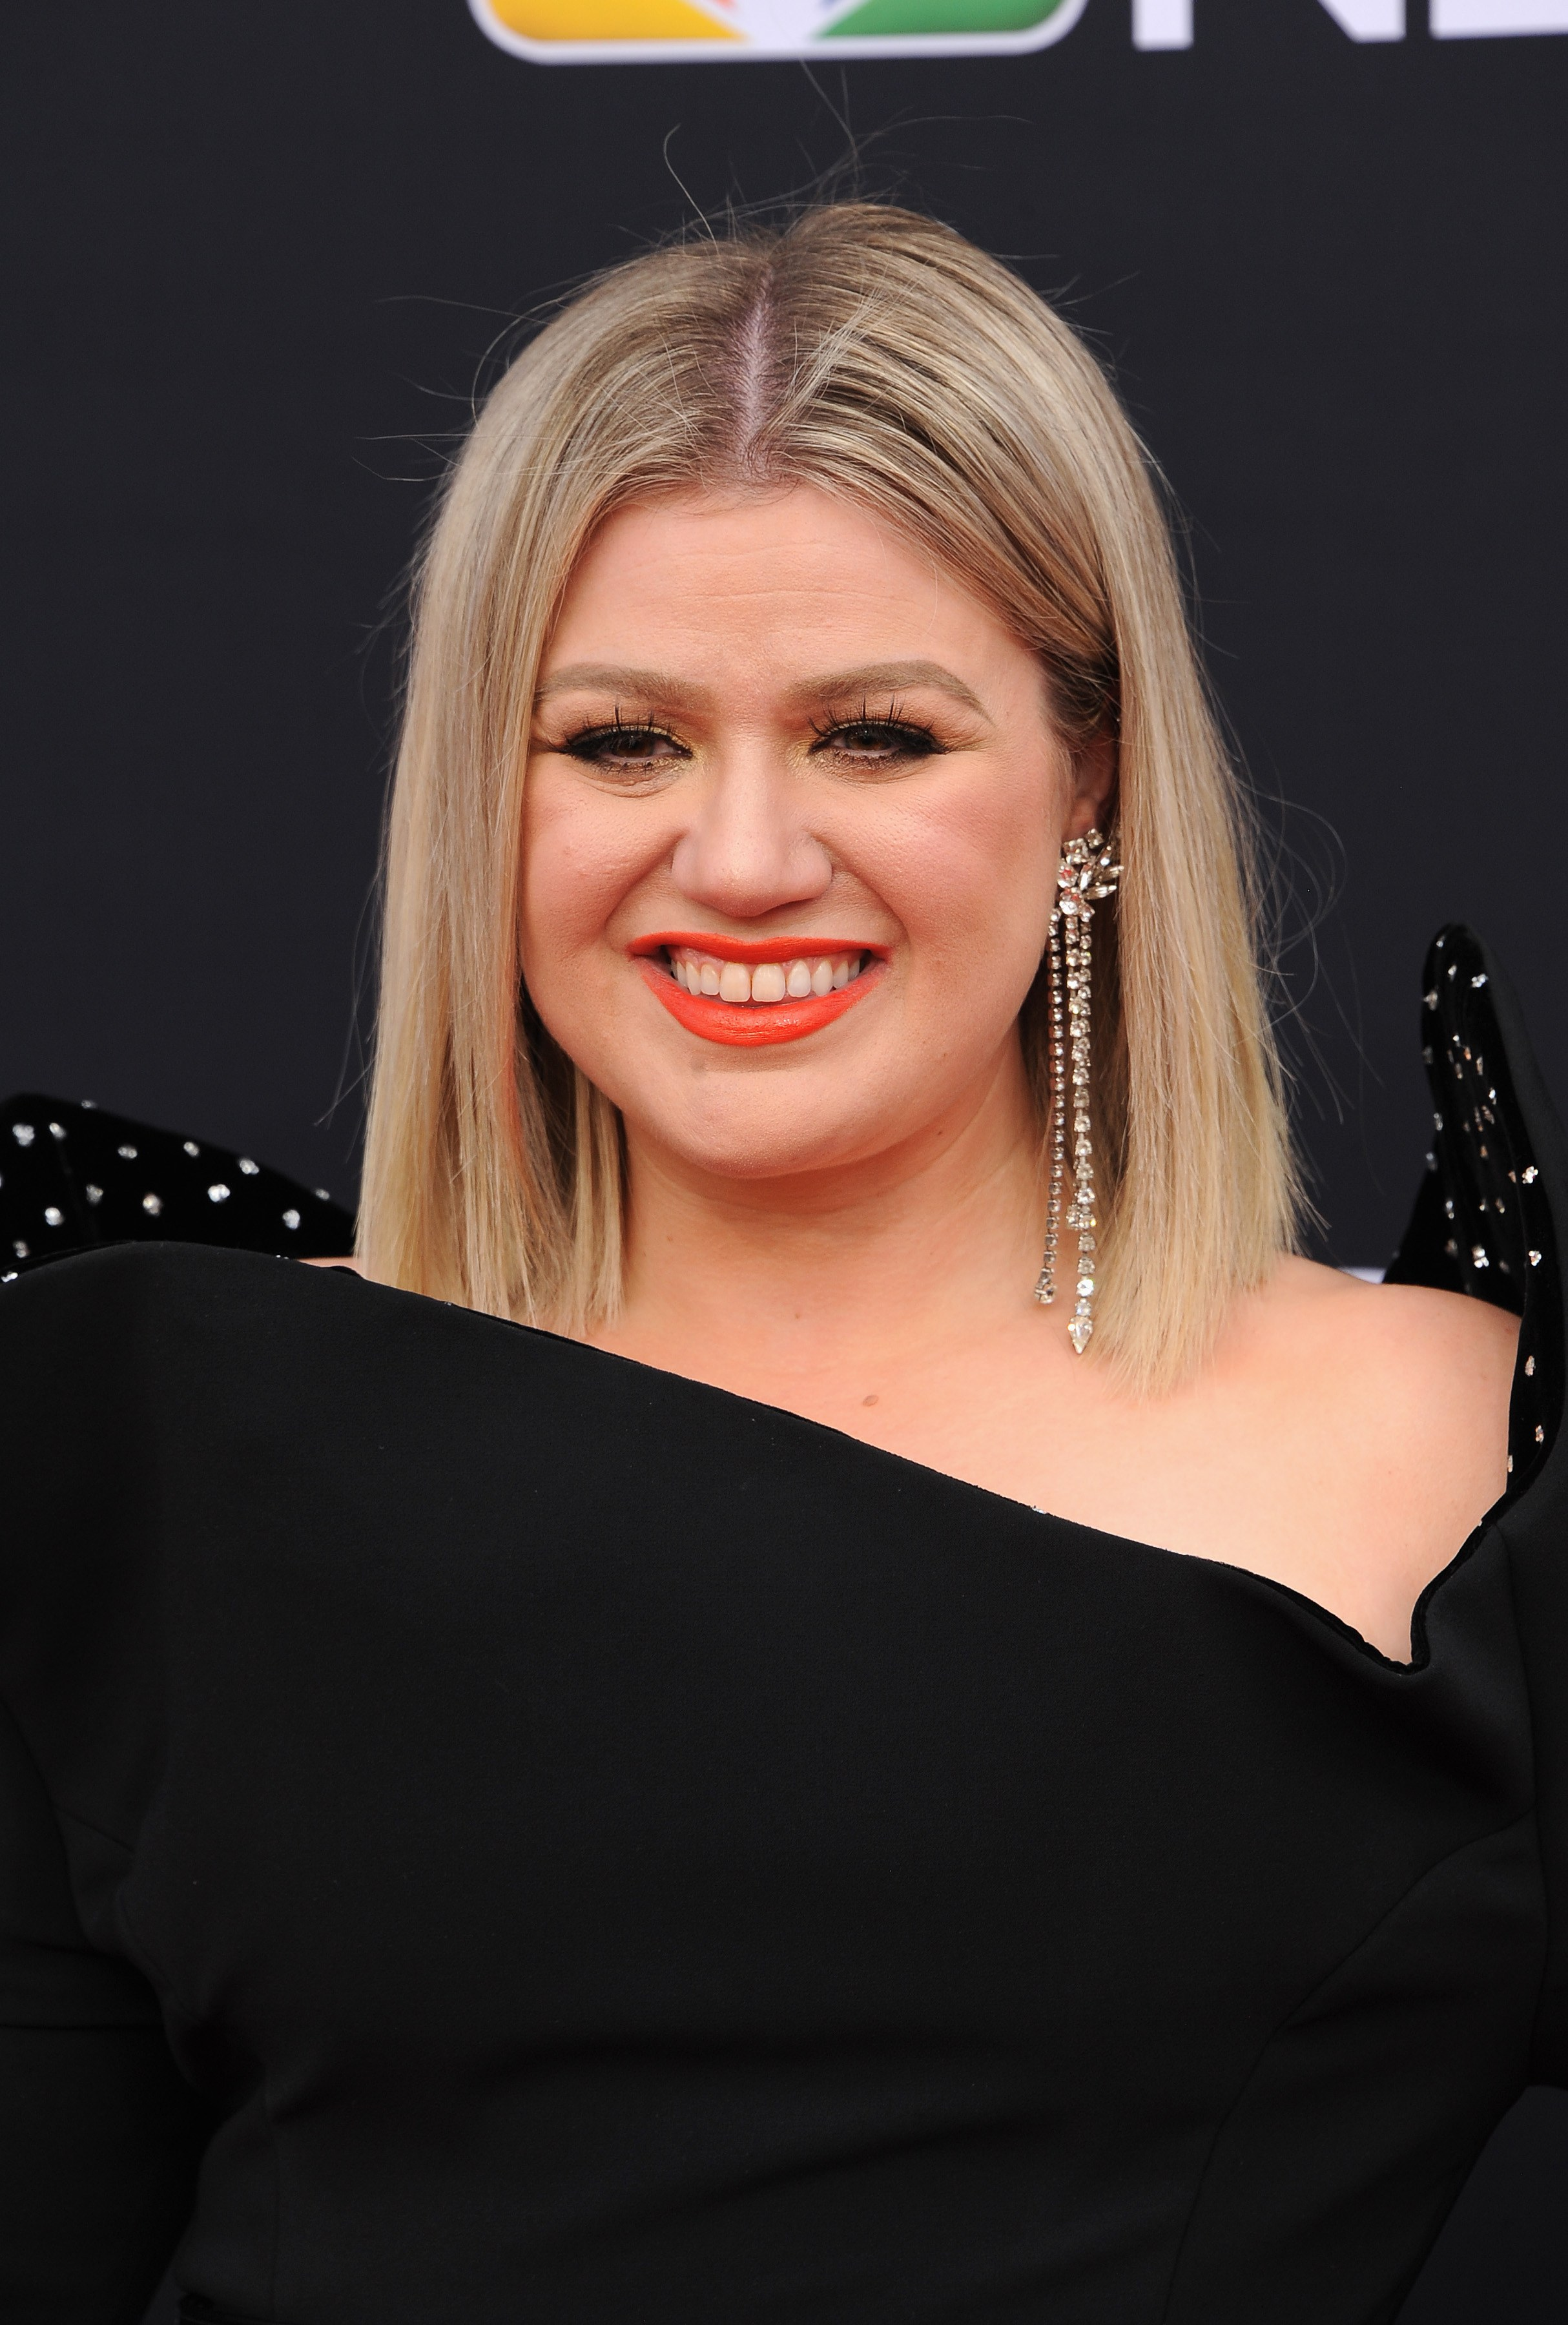 Who is kelly clarkson dating now